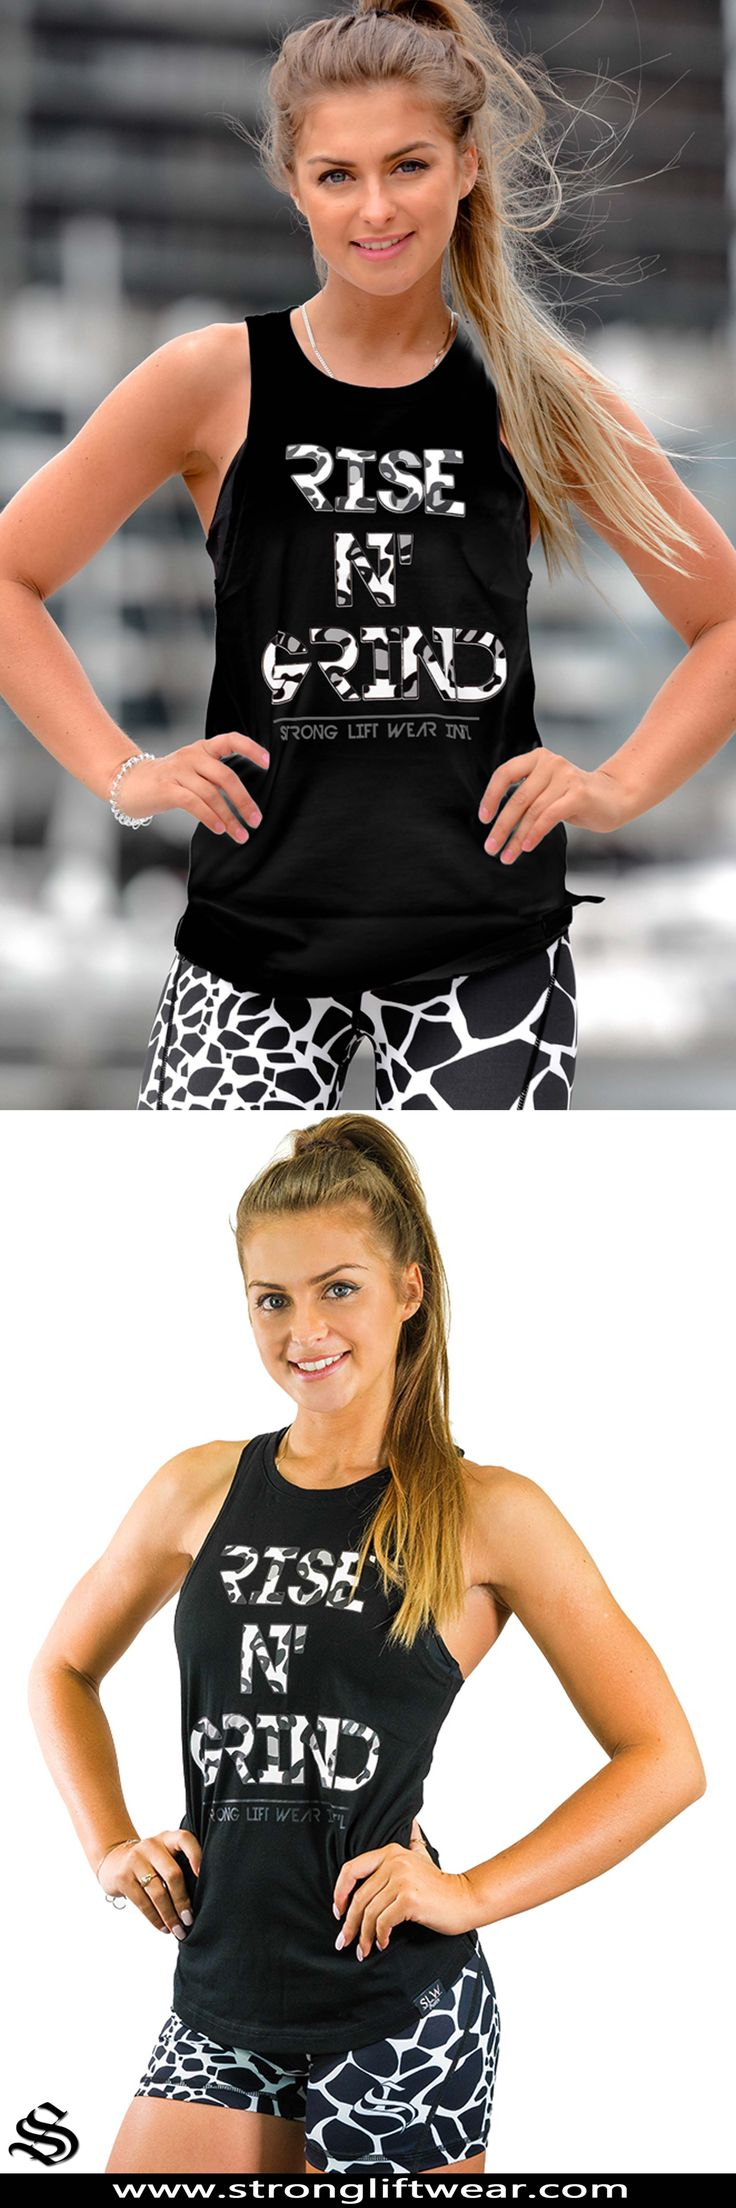 Ladies boulder sleeveless - Rise n' Grind - Black │gym wear │fitness wear │fitness clothing │outfits │workout dress │gym outfits │workout outfits │hoodie │singlets #gymwear #fitnesswear #fitnessclothing #outfits #workoutdress #gymoutfits #workoutoutfits #hoodie #singlets